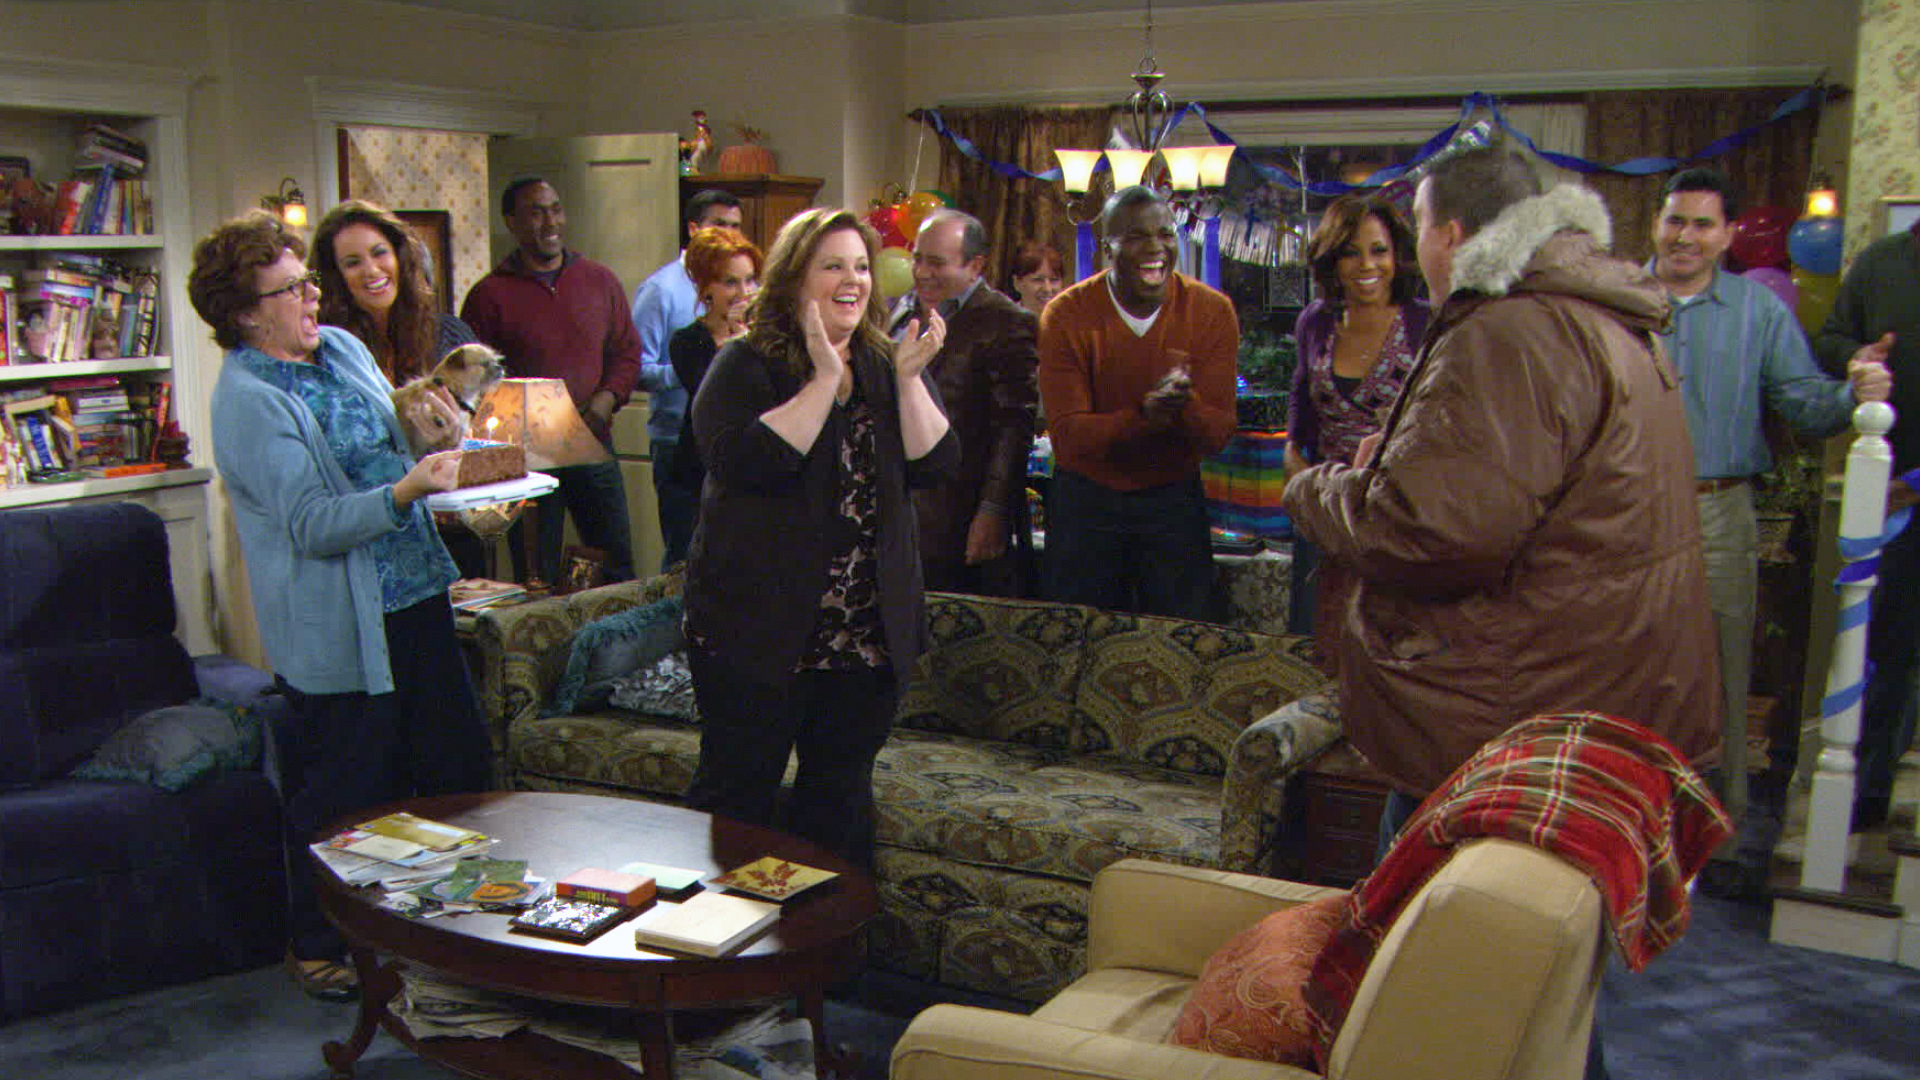 Mike and Molly Renewed!